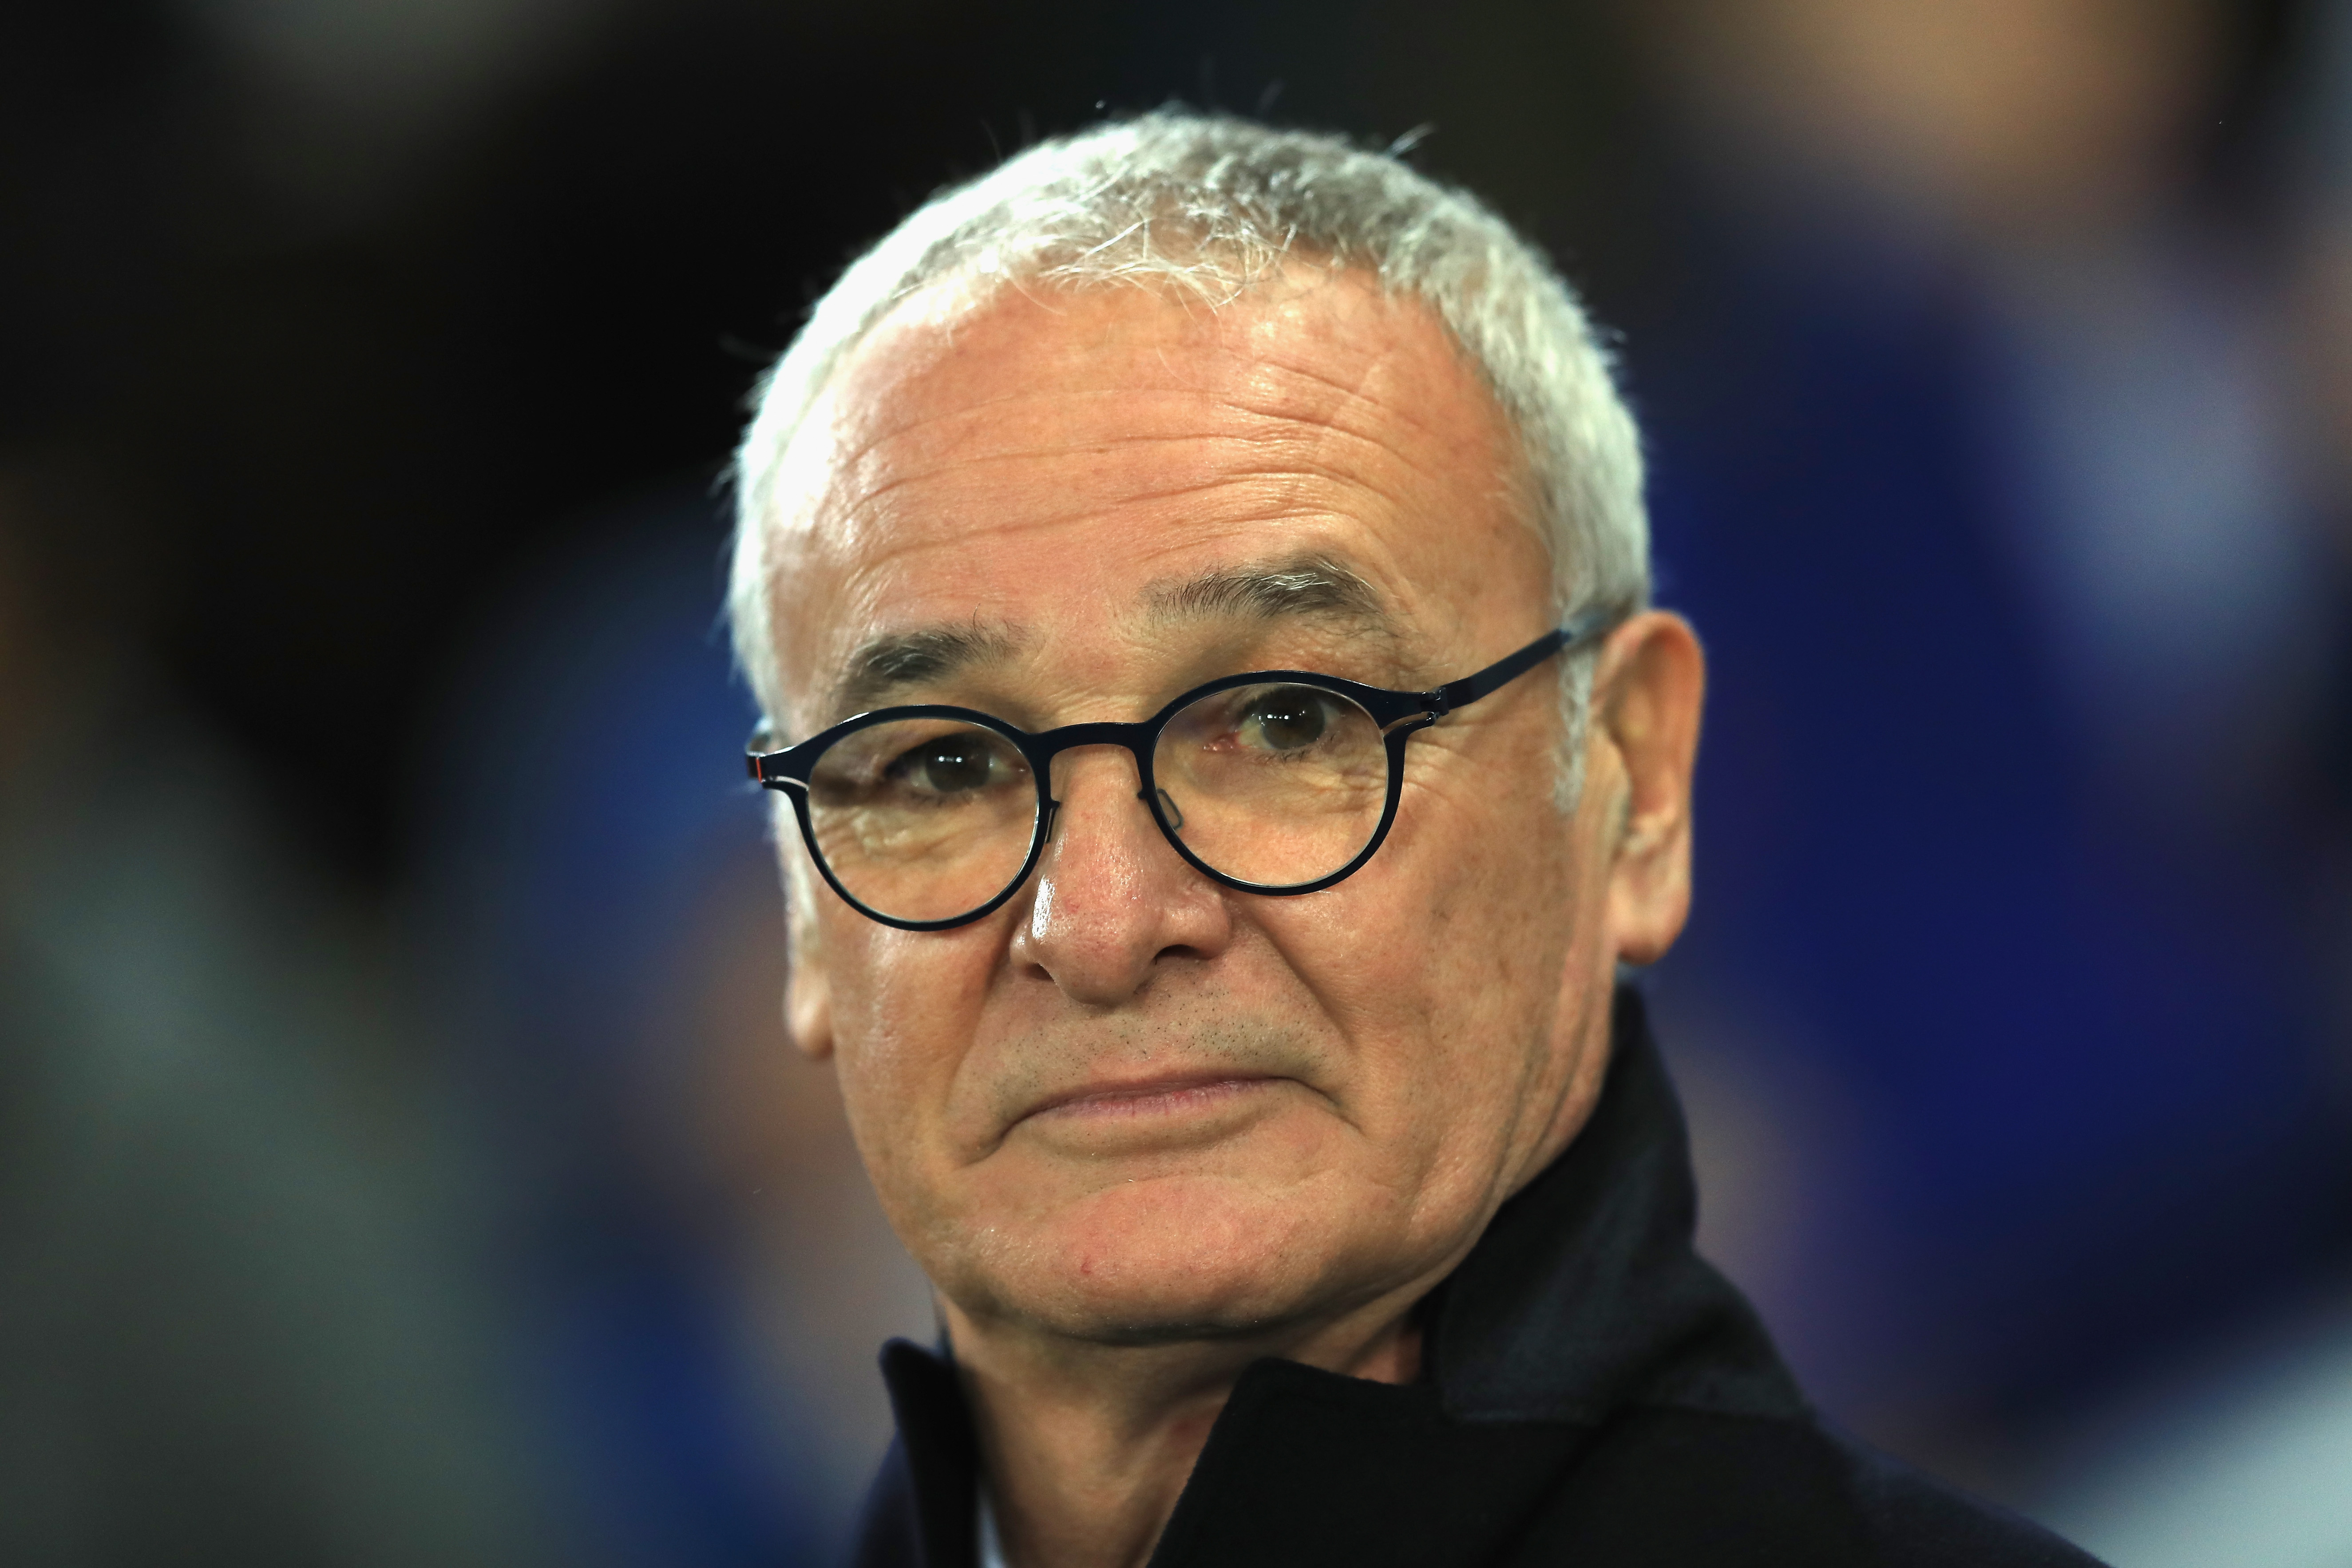 'Yesterday my dream died' – Claudio Ranieri releases heartbreaking statement about his Leicester sacking